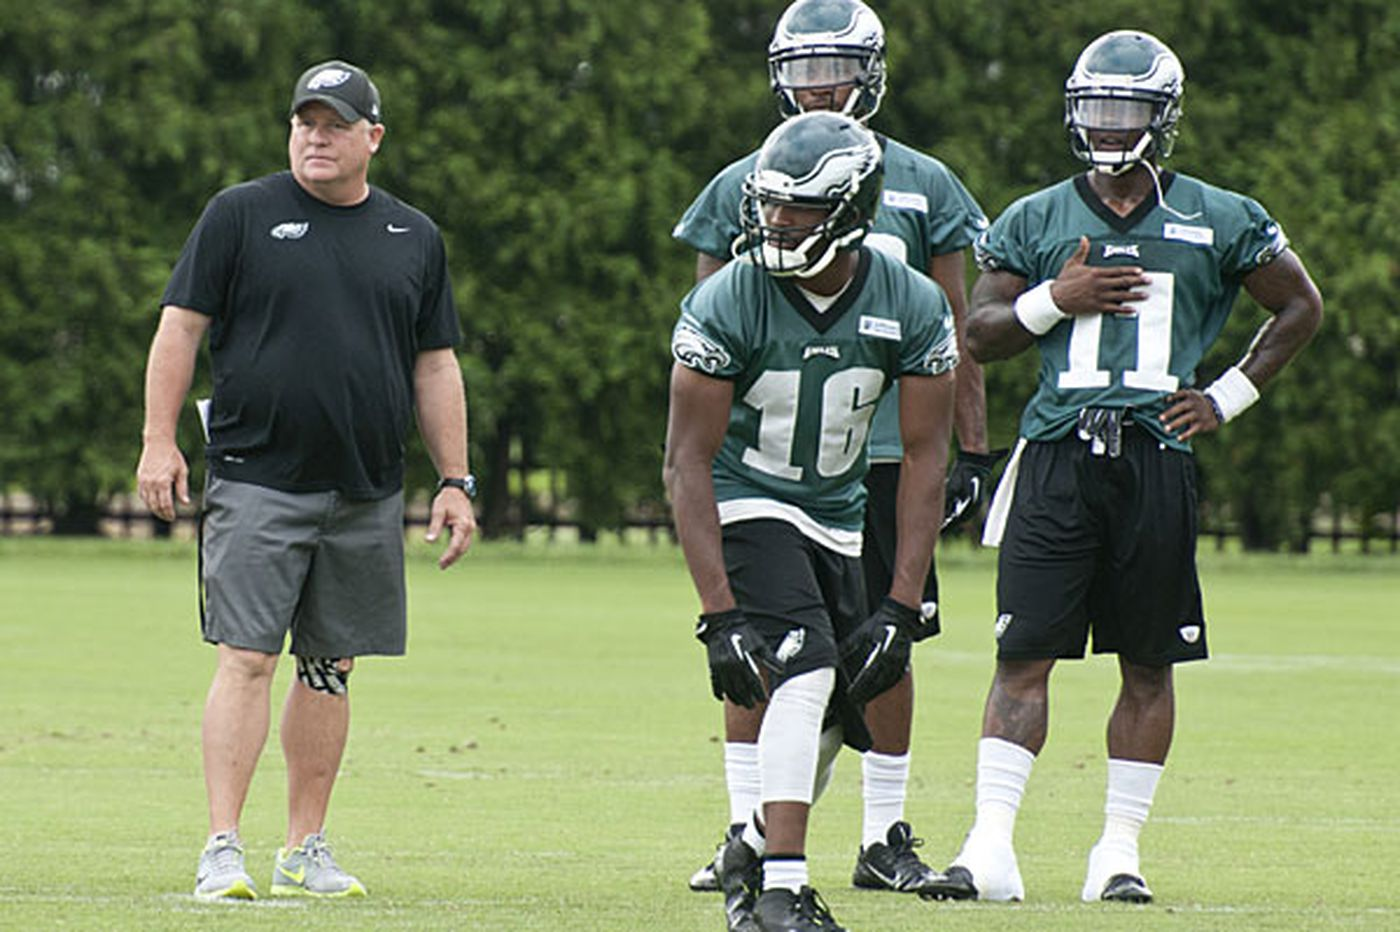 In May and June, everything's rosy for the Eagles